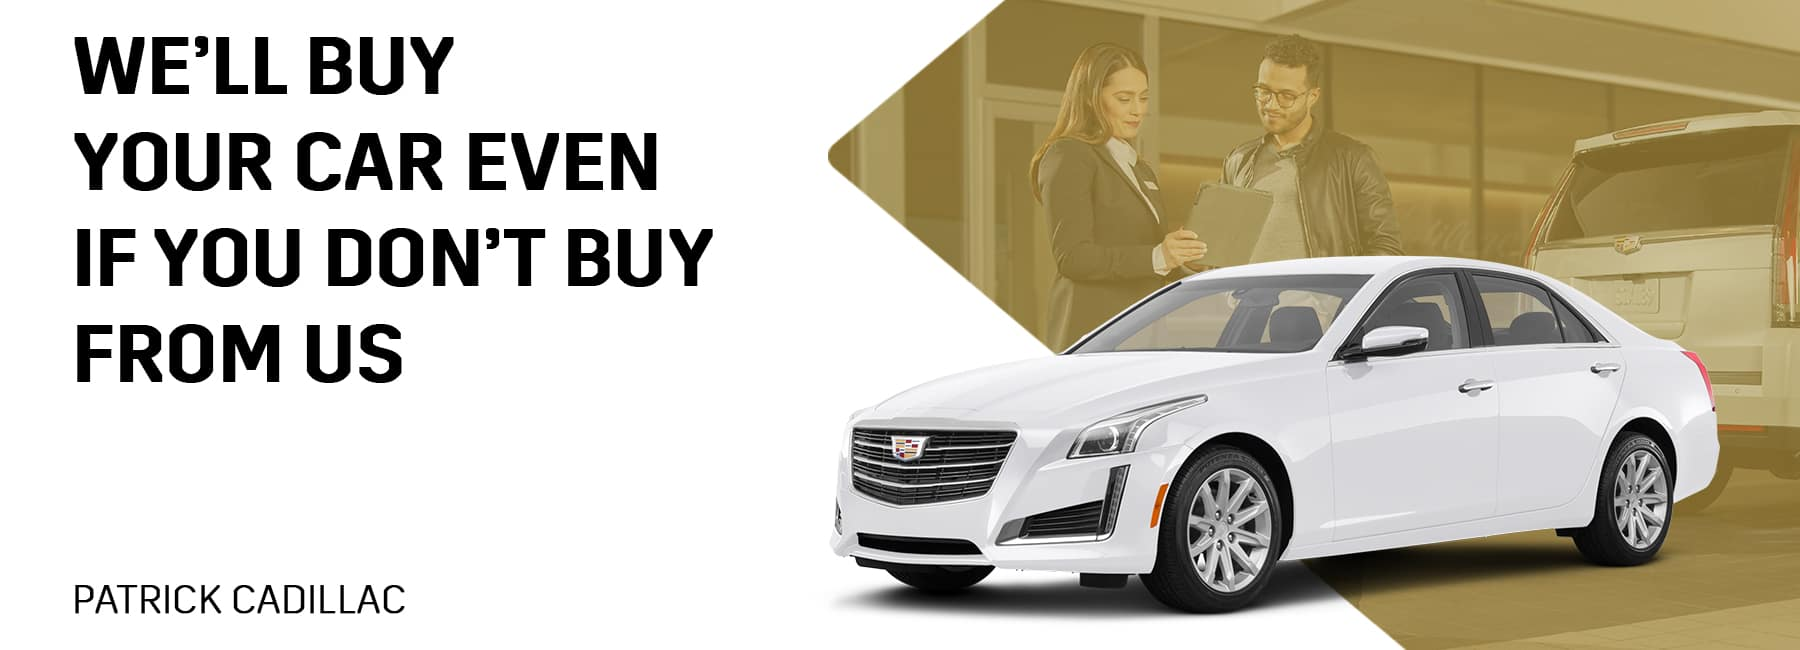 Patrick Cadillac will buy your car even if you don't buy from us!